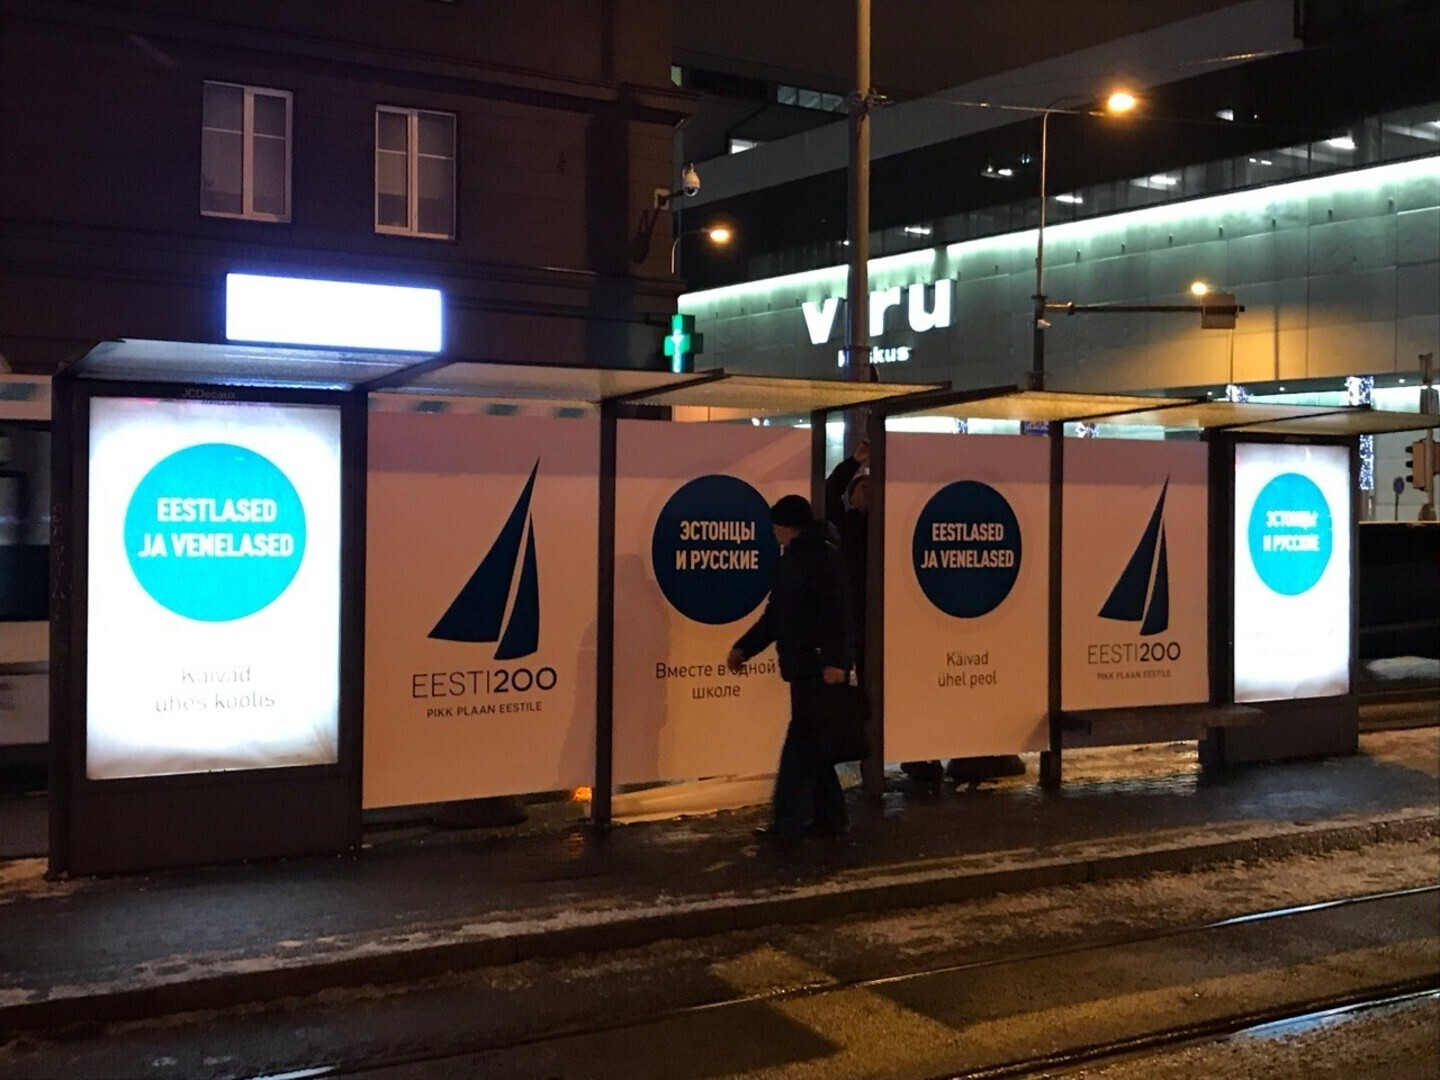 Controversial ads at Tallinn tram stop replaced by Estonia 200 ads